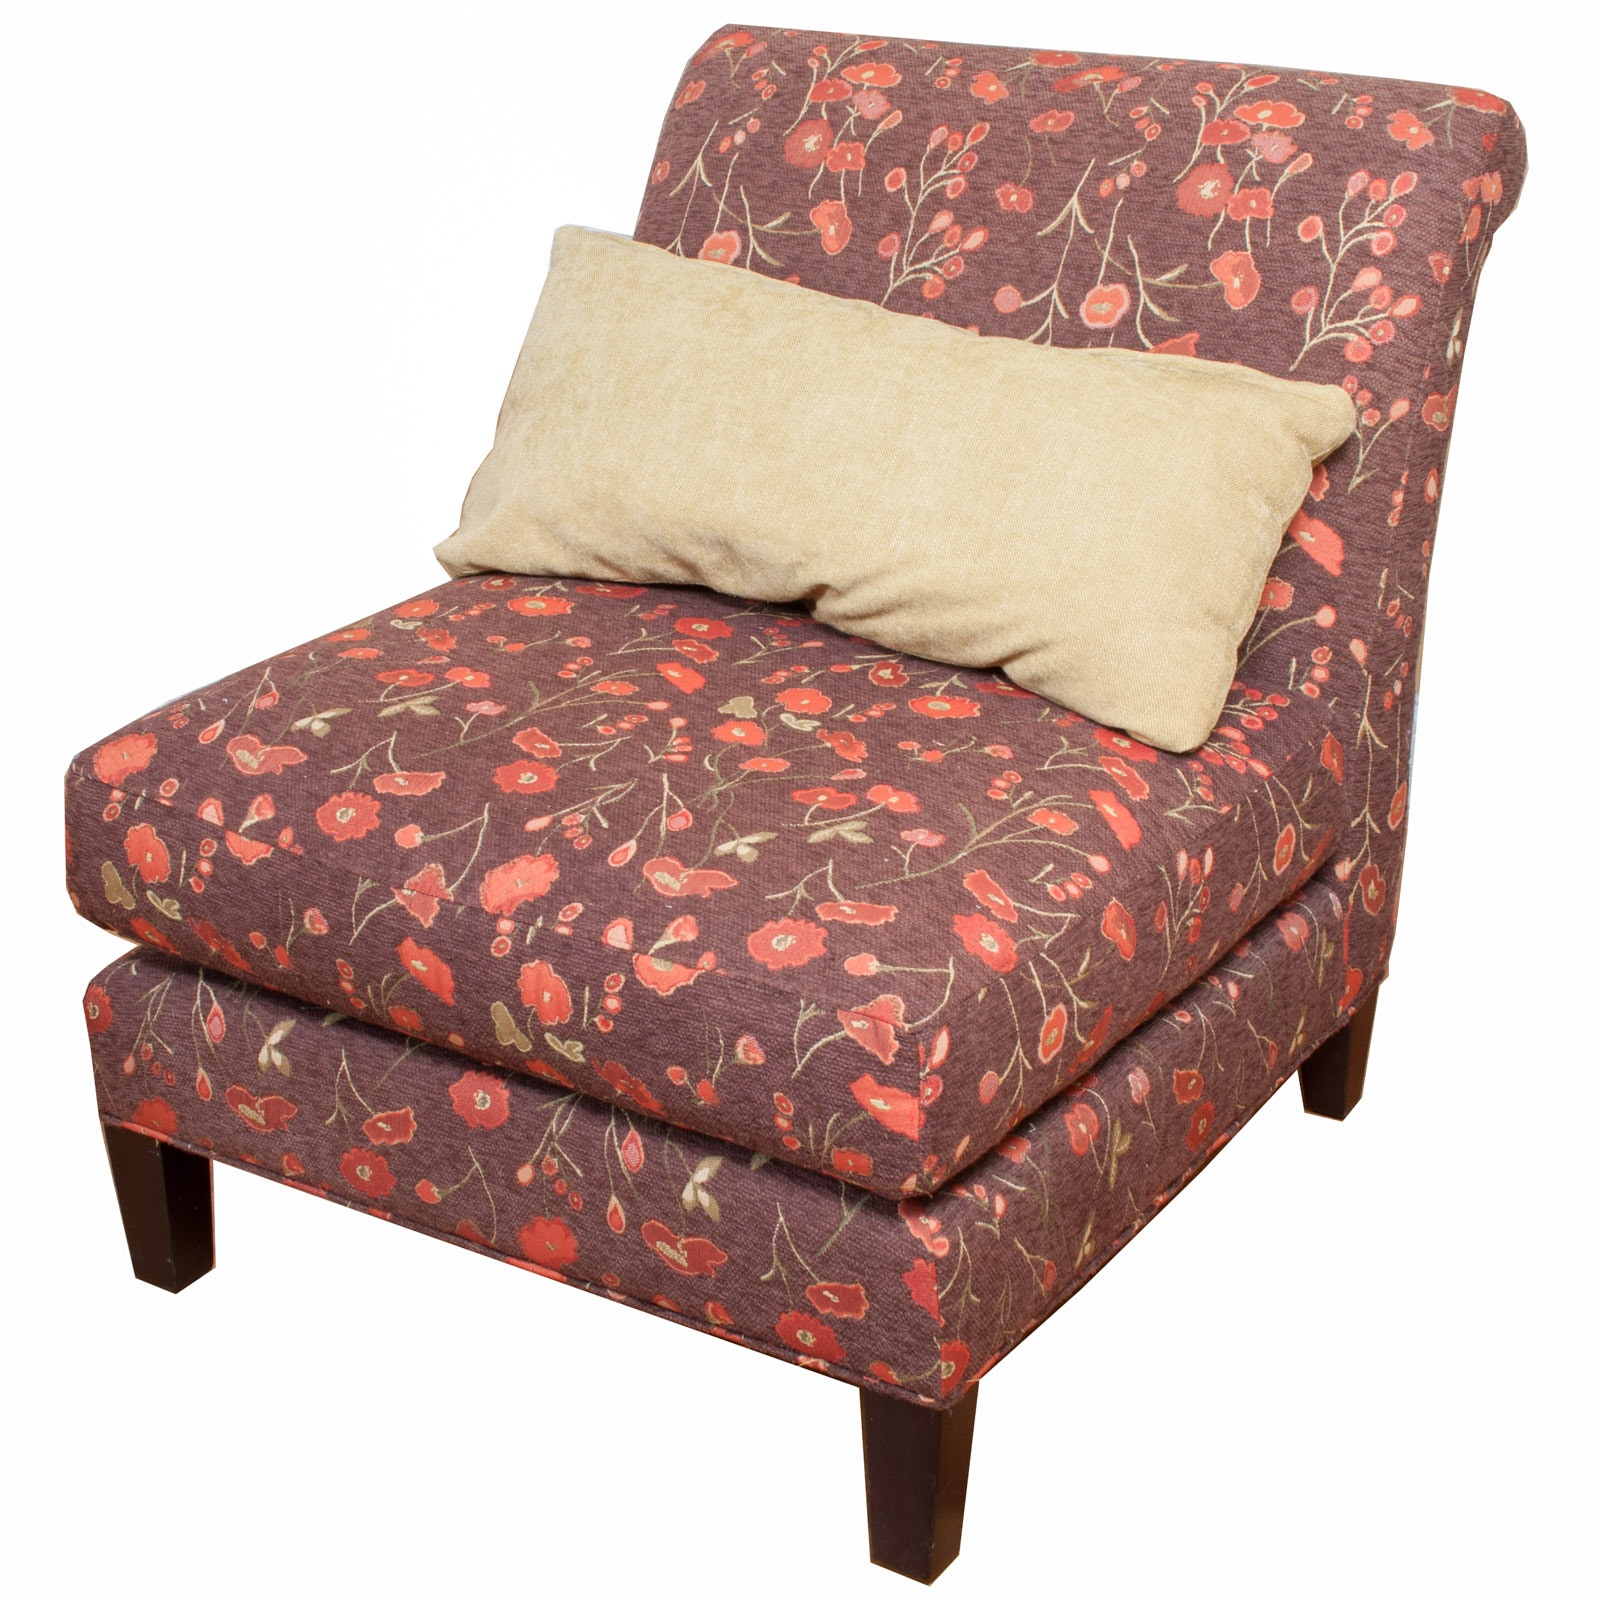 Floral Chair By Arhaus Furniture ...